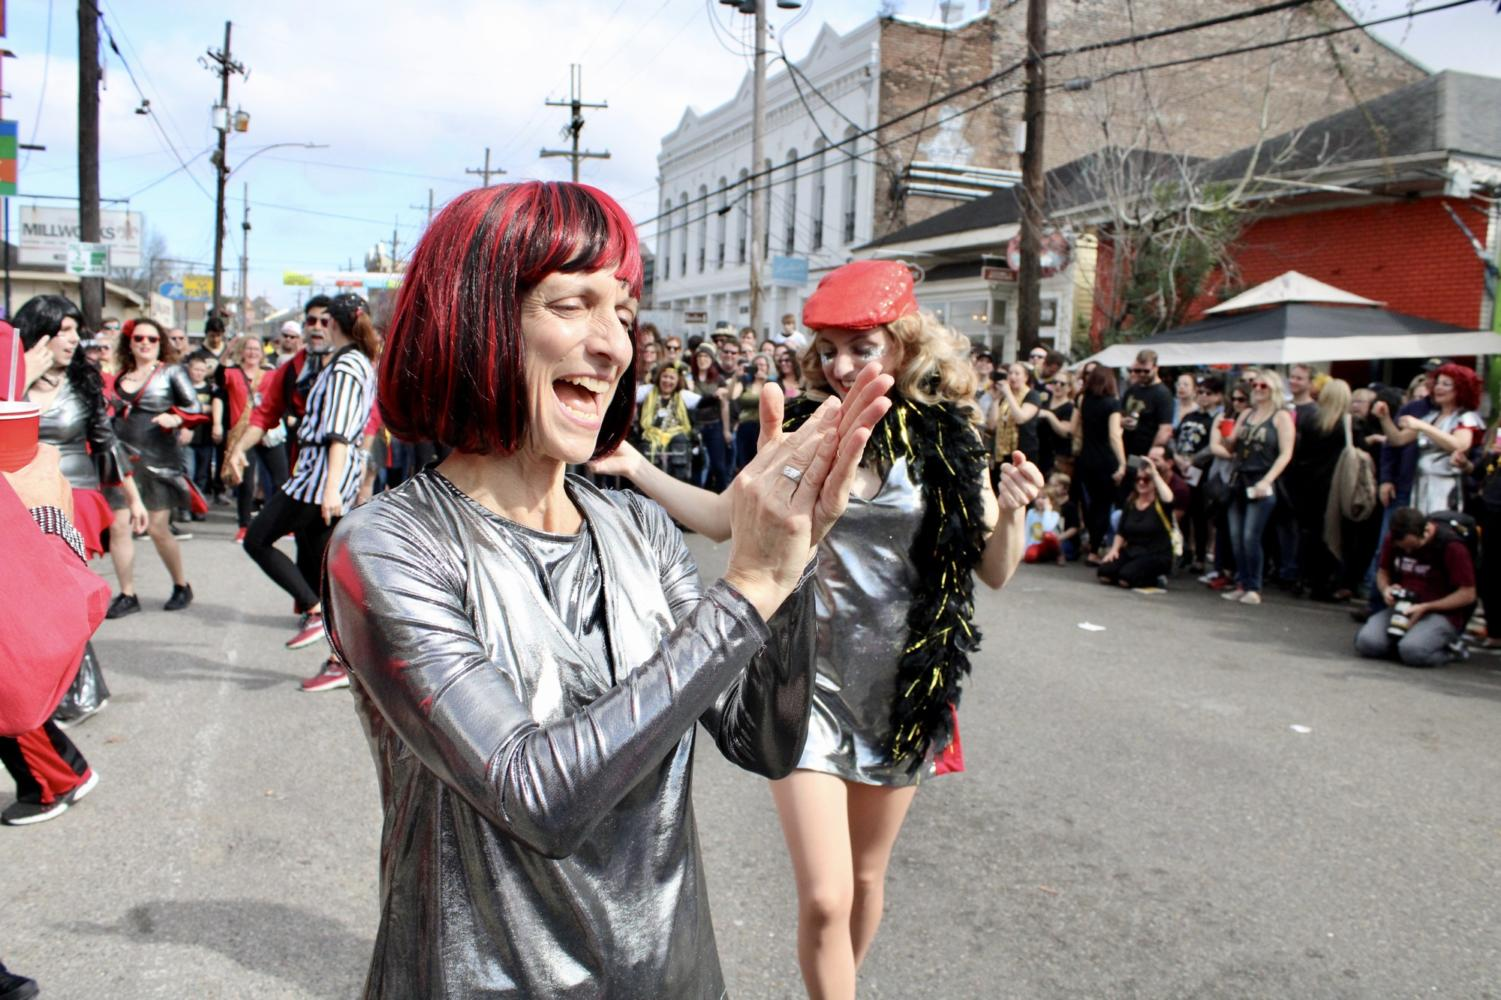 A+member+of+a+dance+krewe+dances+in+the+center+of+the+Magazine+Street+block+party.+Photo+credit%3A+Madison+Mcloughlin